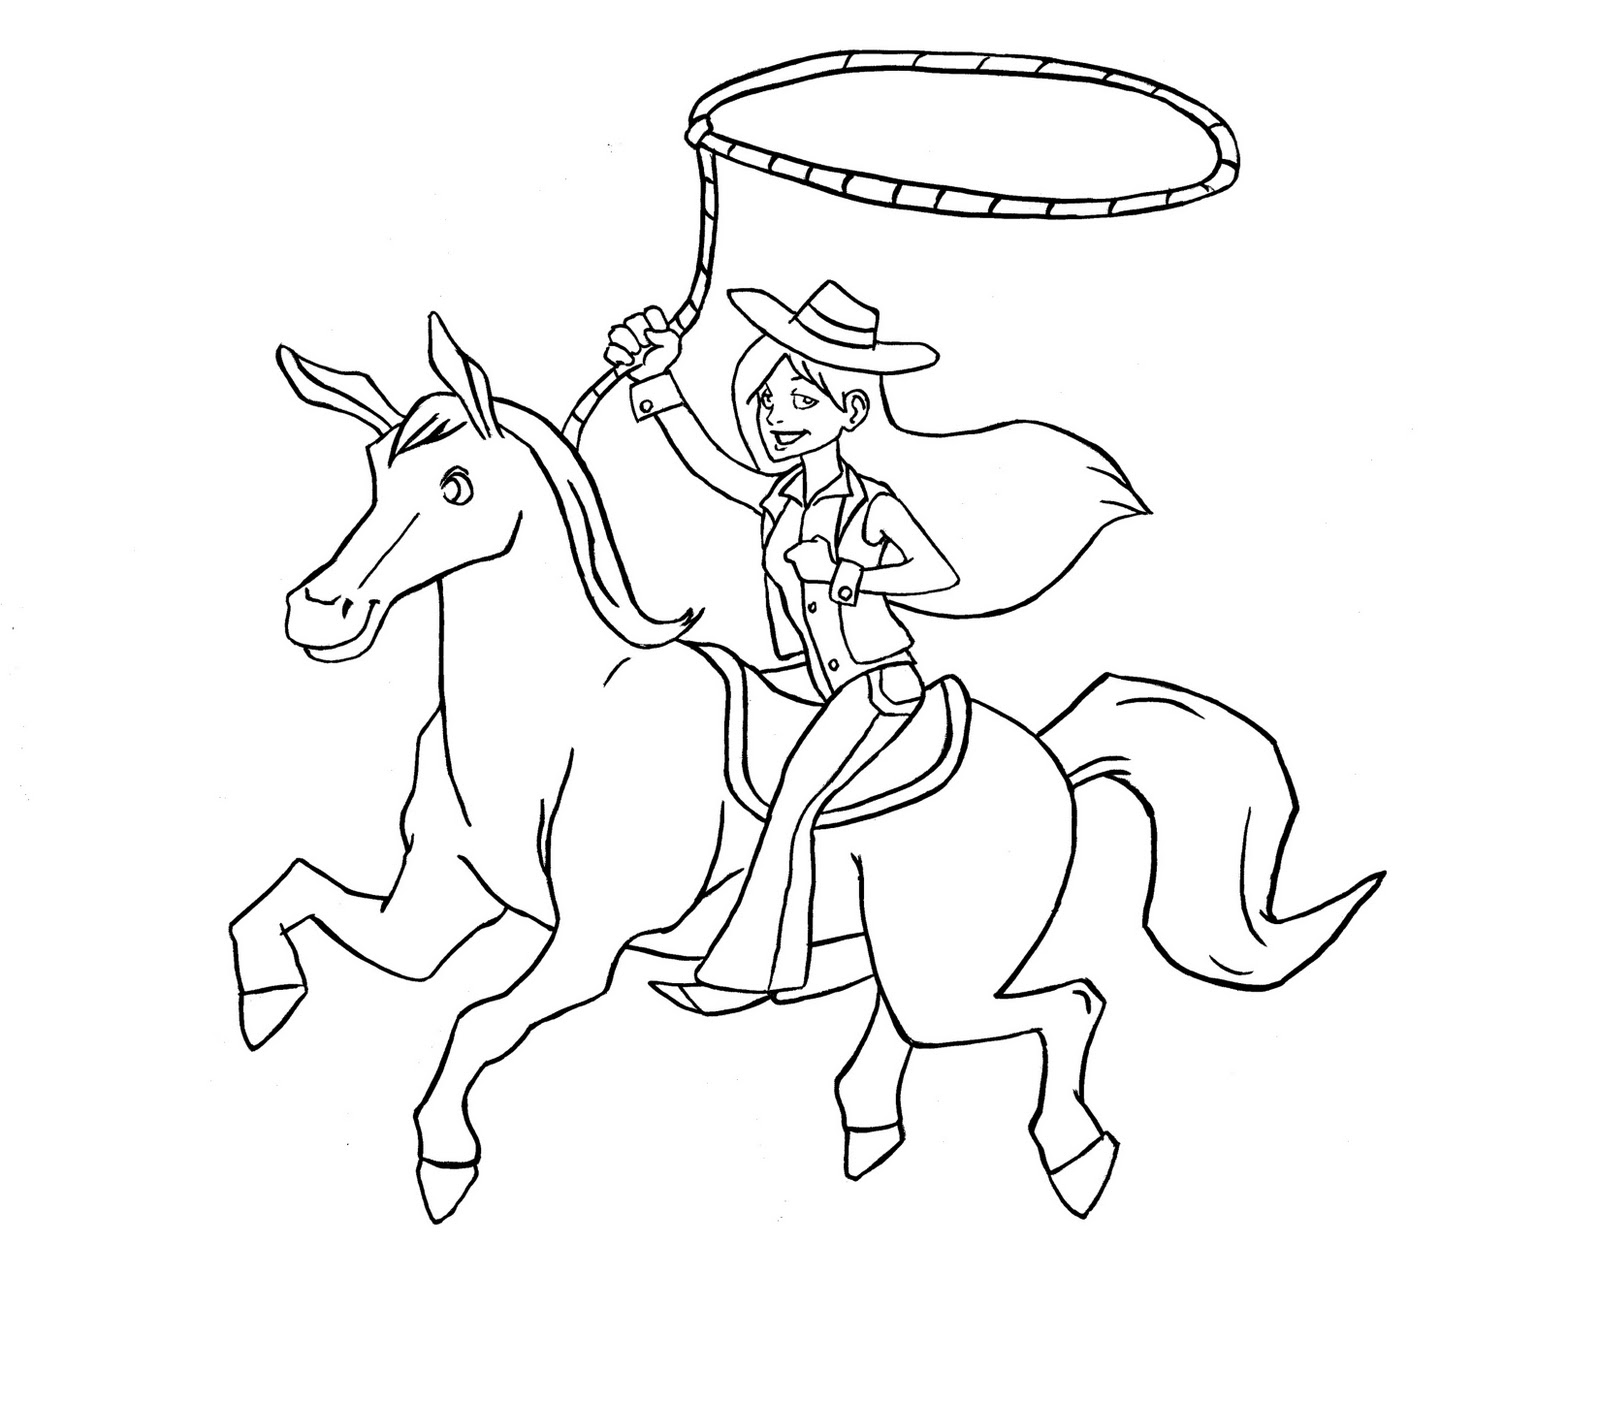 Cowgirl Riding Horse Drawing